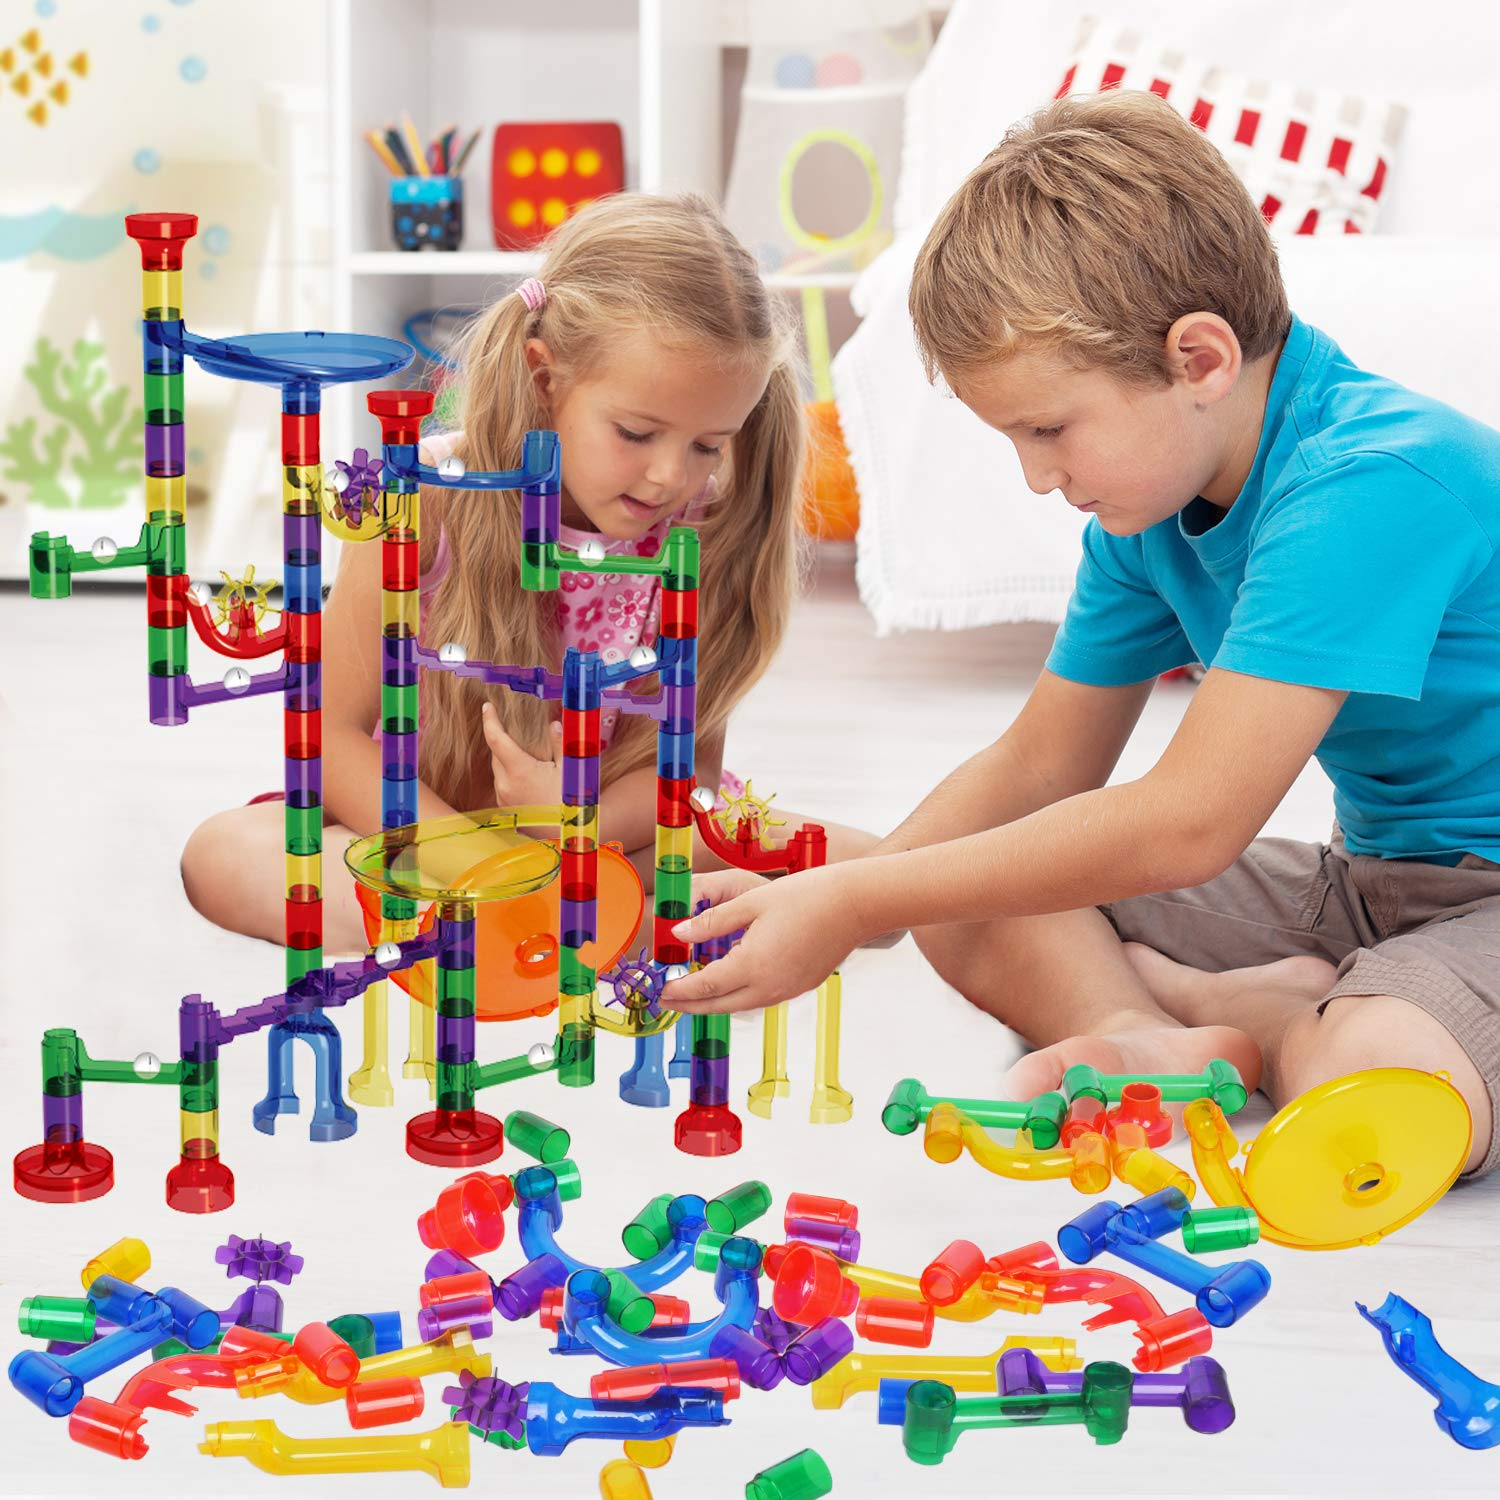 Marble Run - 127 Pcs Marble Race Track Educational Building Blocks Set Construction Stem Learning Toys Marble Maze Game for Kids 4 5 6 7 8 9 + Year Old Boys Girls (122 Marbulous Pieces + 5 Glass Marbles)